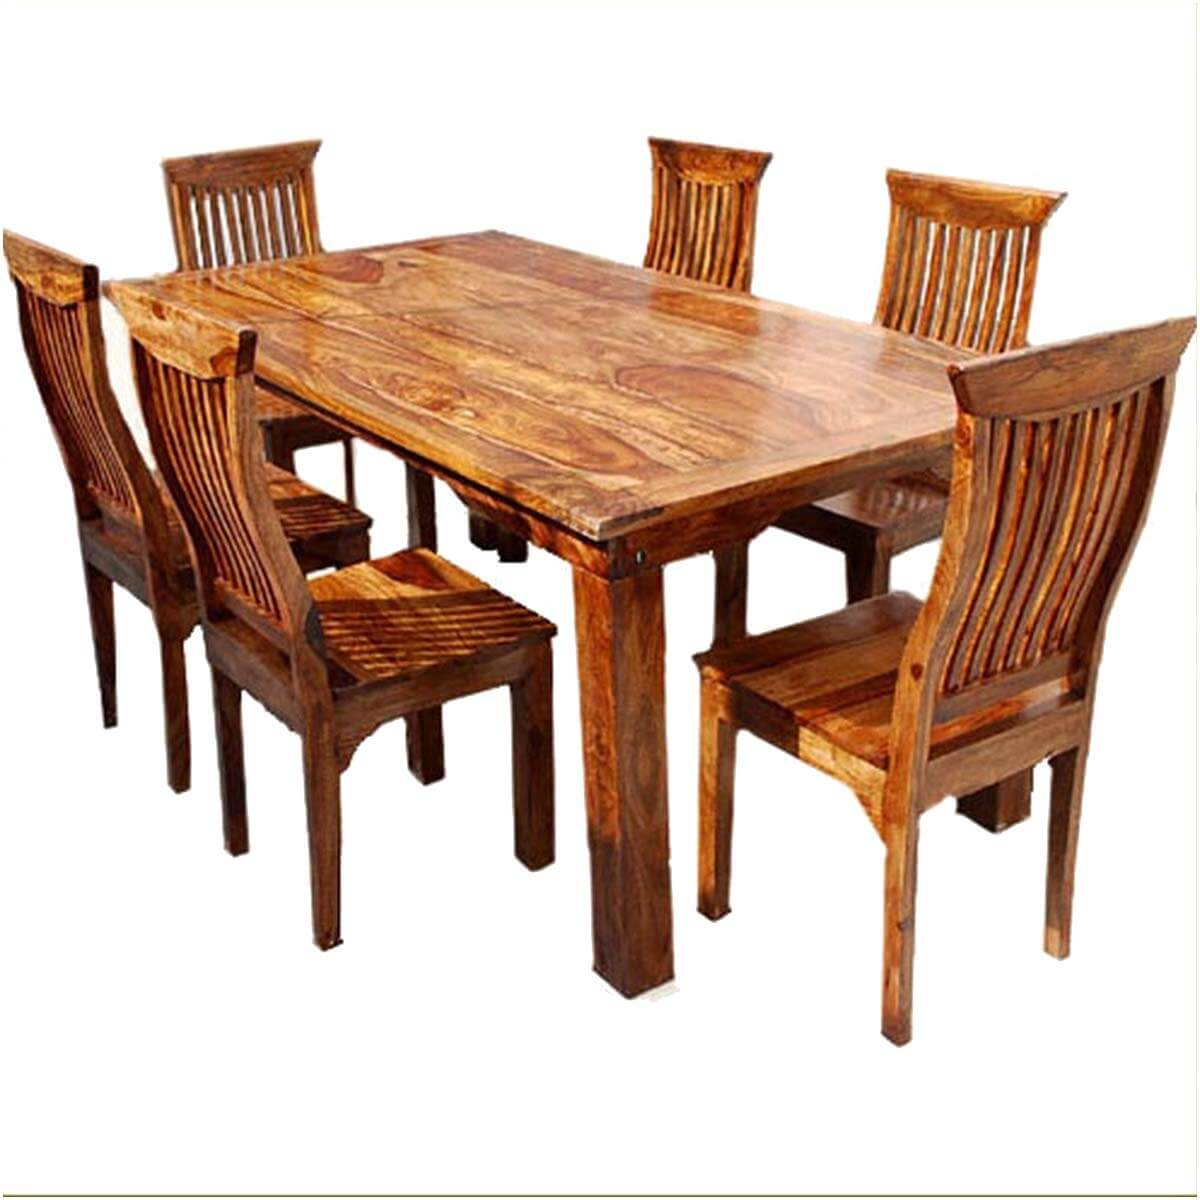 Dallas ranch solid wood rustic dining table chairs hutch set for Dining table set decoration